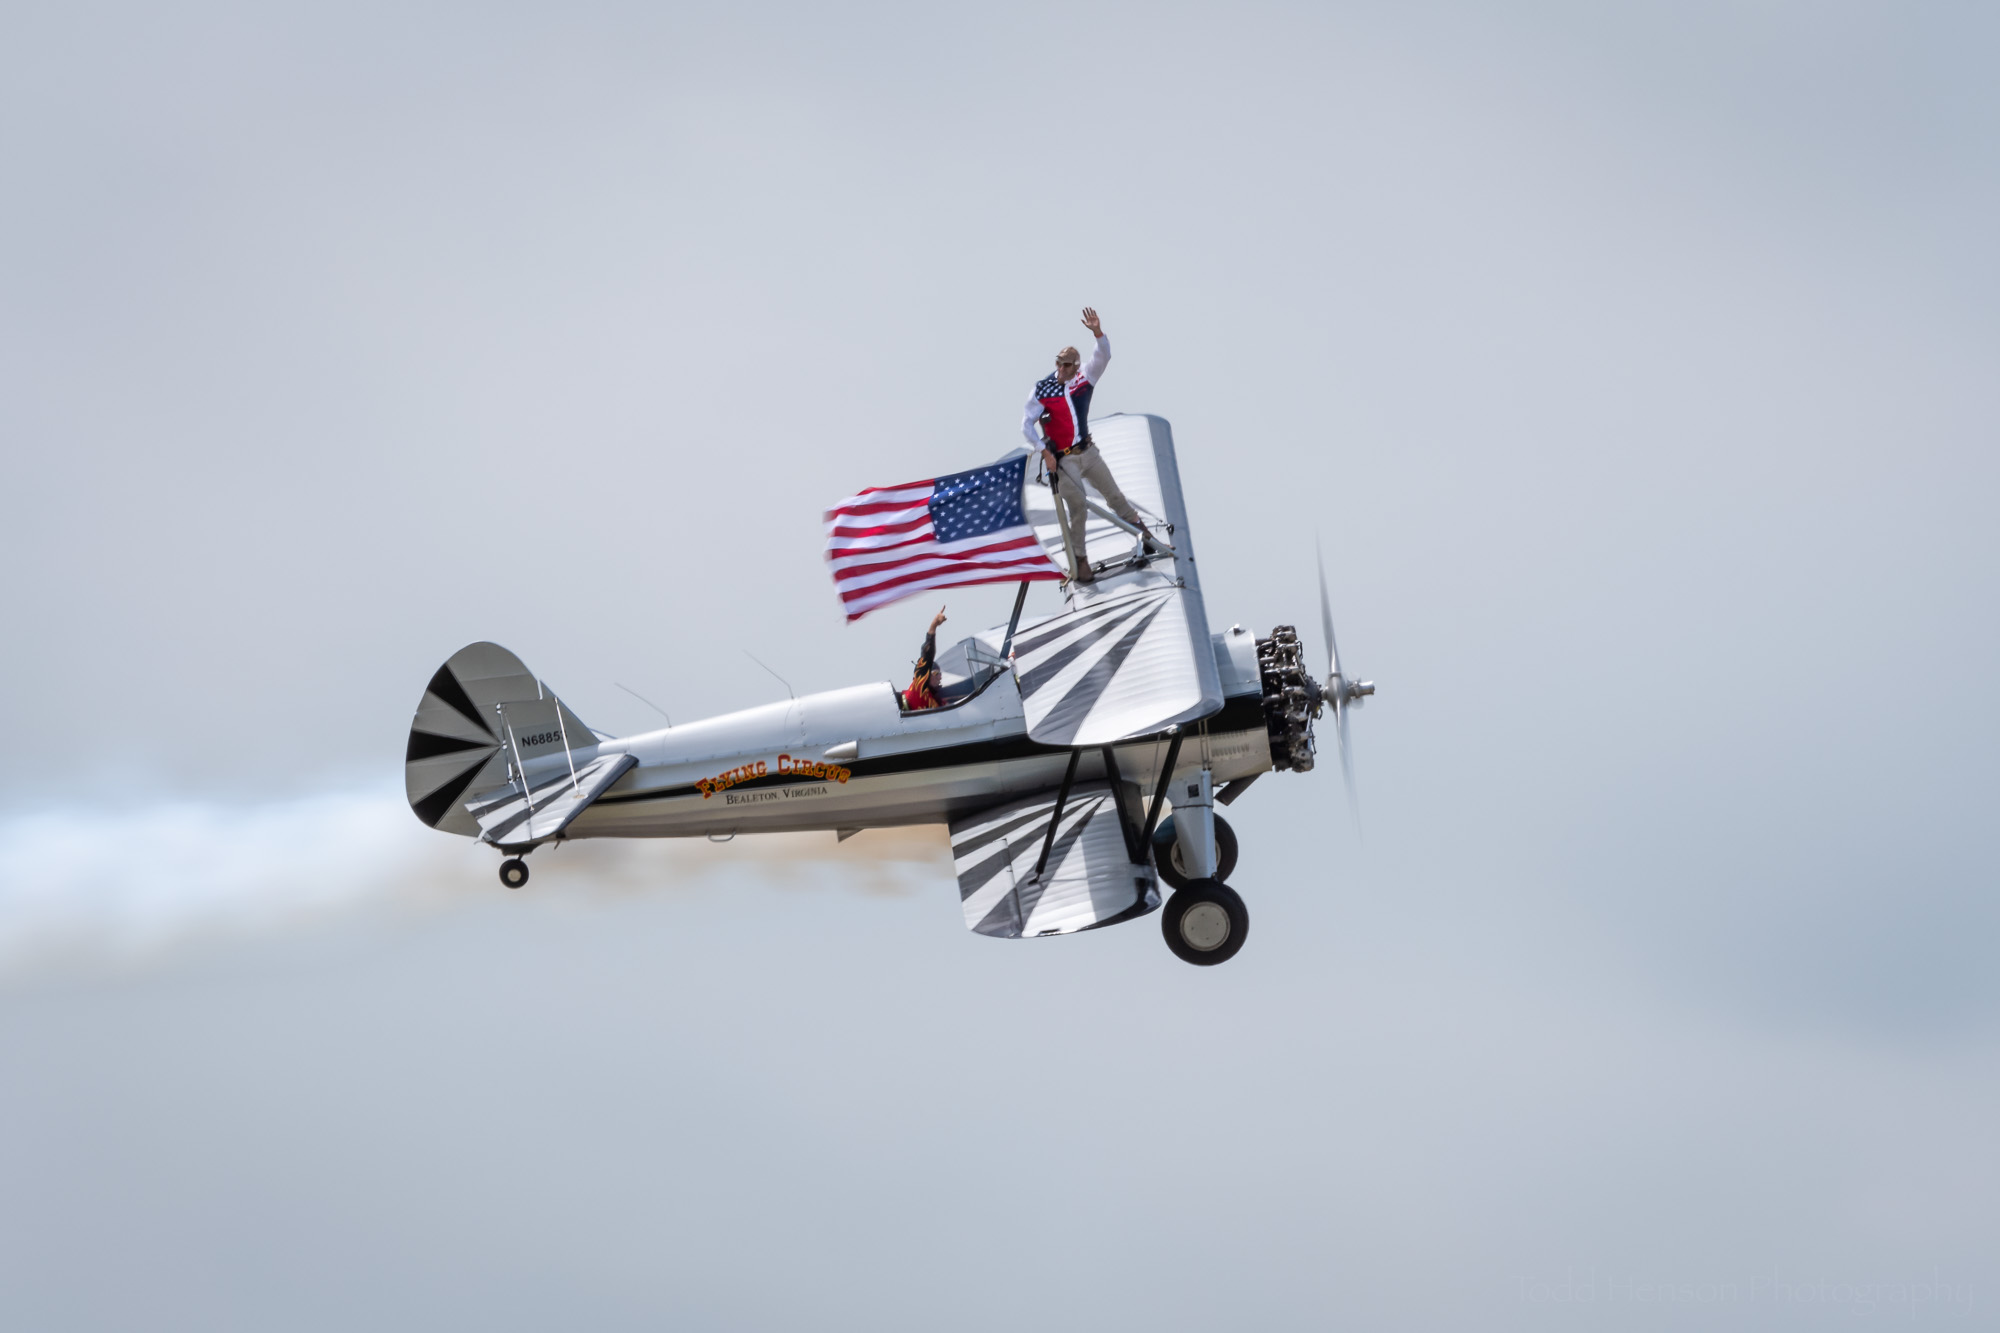 Chuck Tippett and Joe Bender of the Bealeton Flying Circus flying a US flag atop their Stearman biplane.